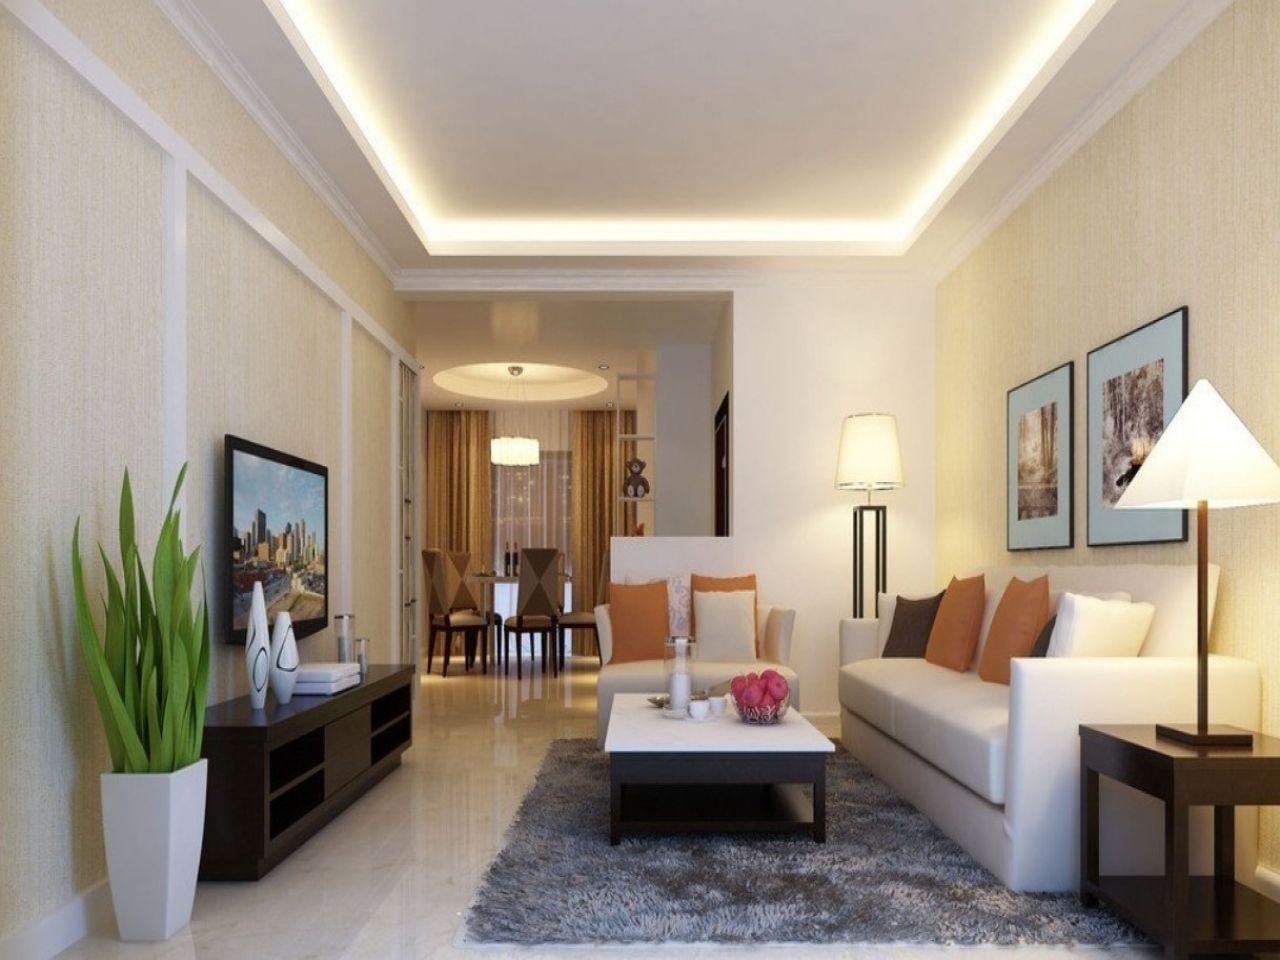 Living Rooms With Wood Ceilings Suspended Ceiling Living Room Design Ideas Model Living Ro False Ceiling Bedroom False Ceiling Living Room False Ceiling Design